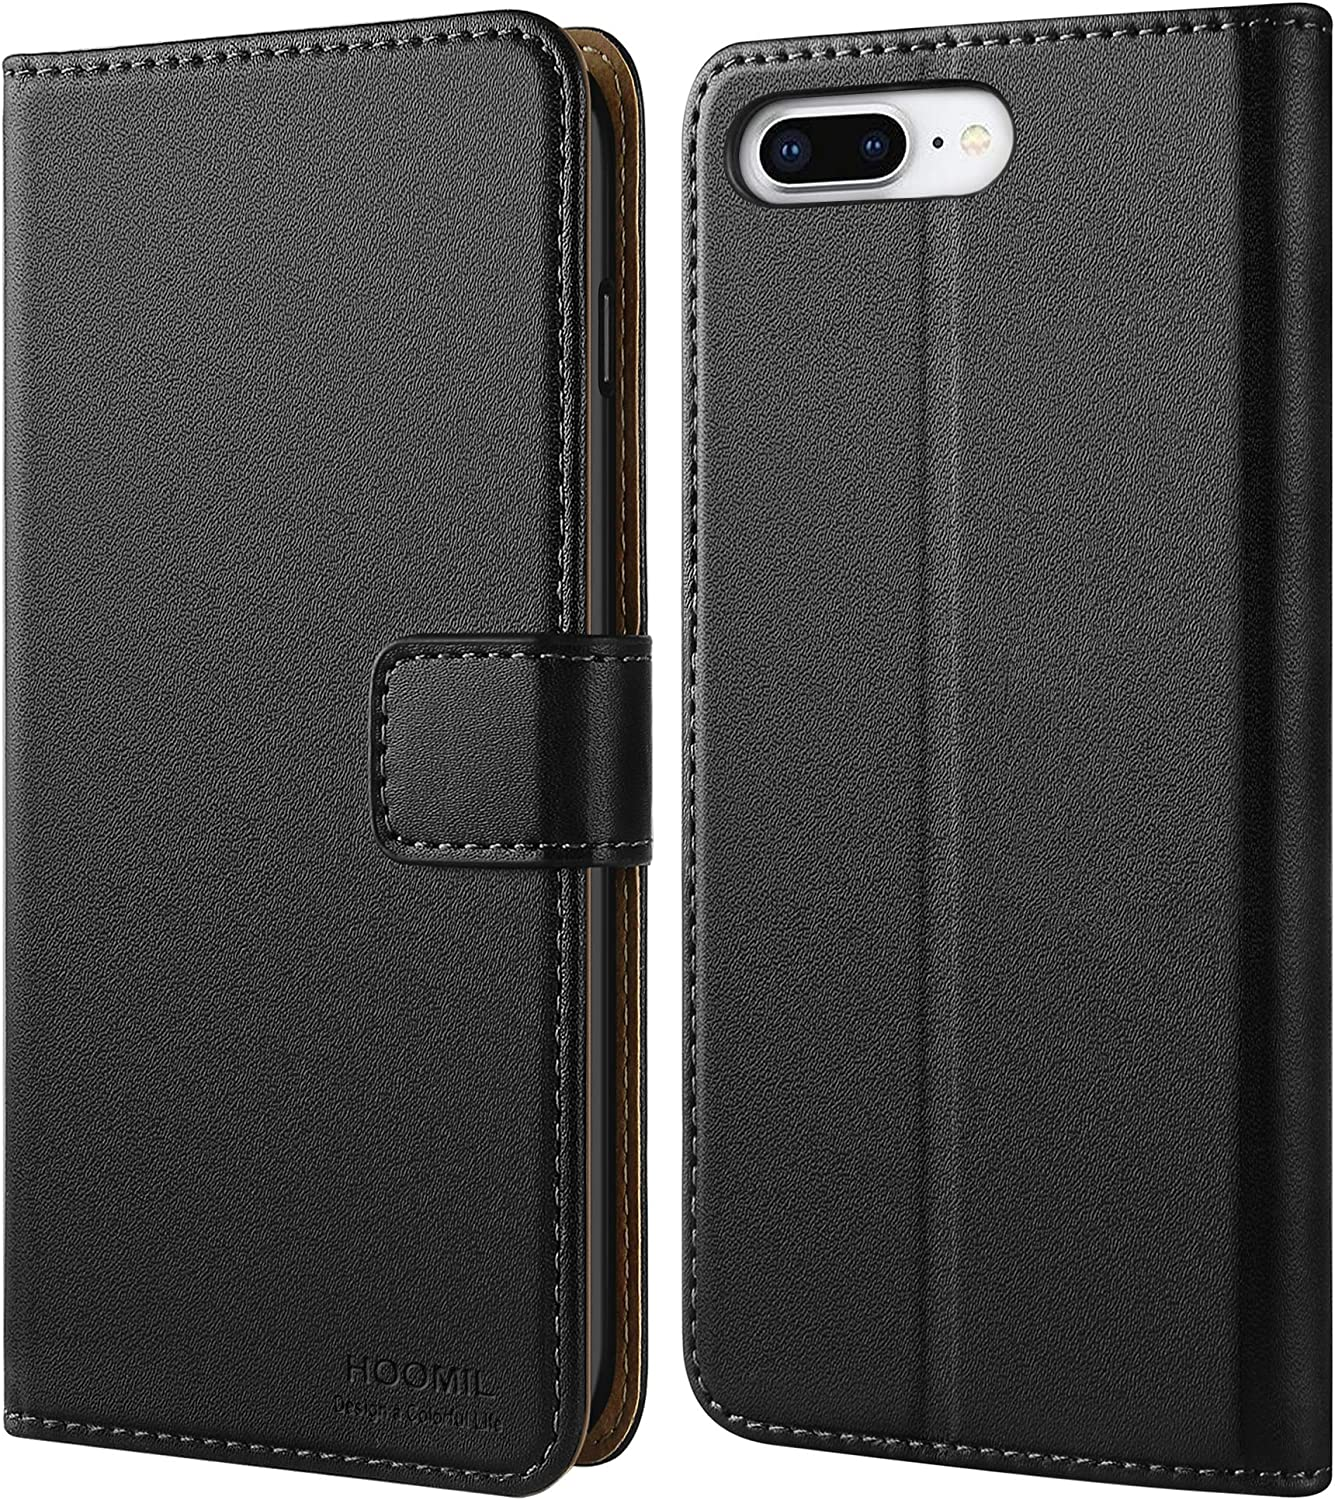 HOOMIL Wallet Case for iPhone 7 Plus/iPhone 8 Plus, Flip Leather Cover, Black